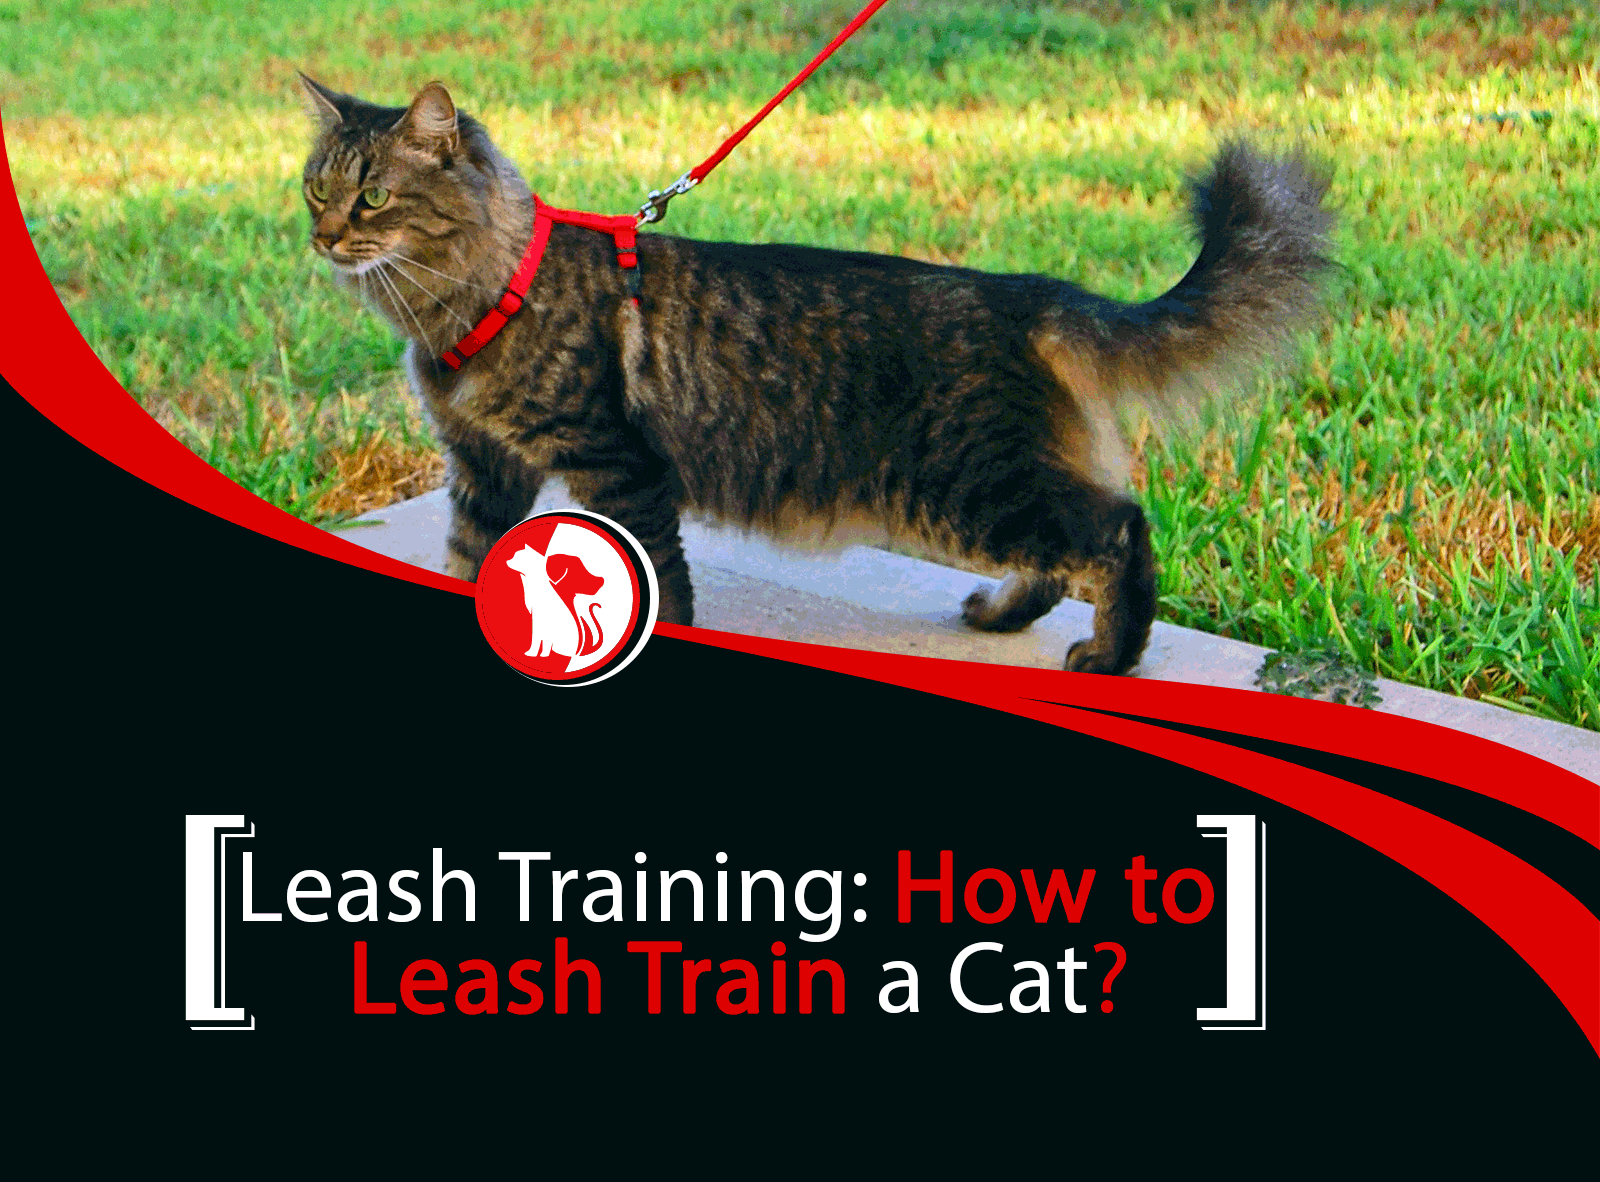 Leash Training: How to Leash Train a Cat or Kitty